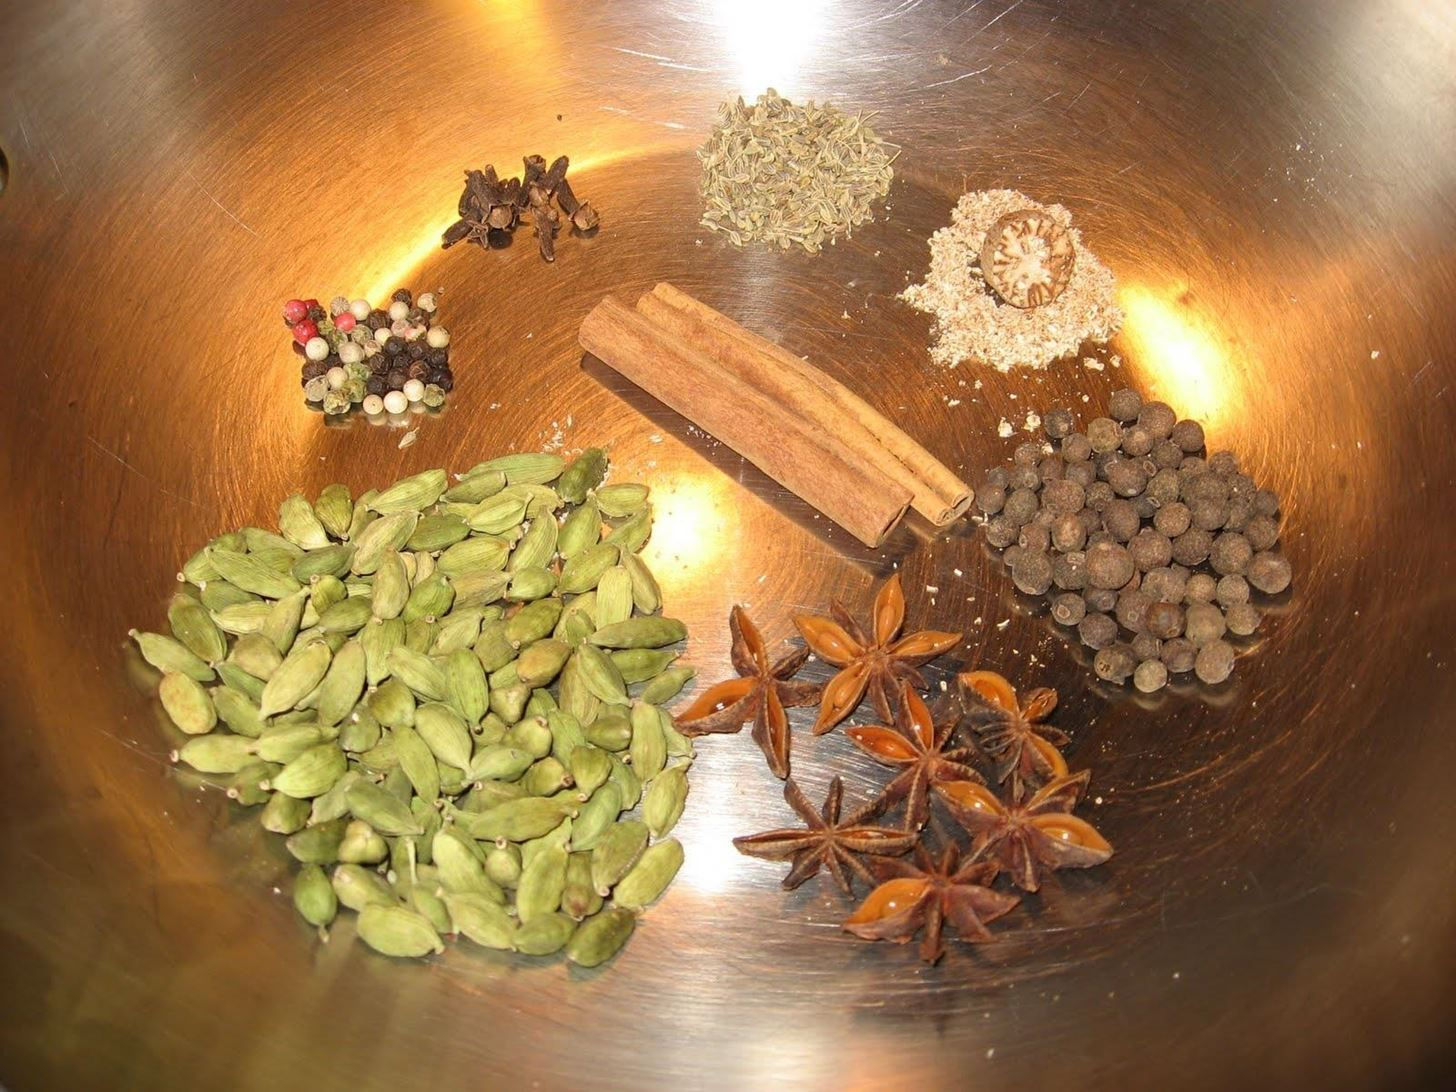 Ingredients 101: Buying, Grinding, & Tempering Spices